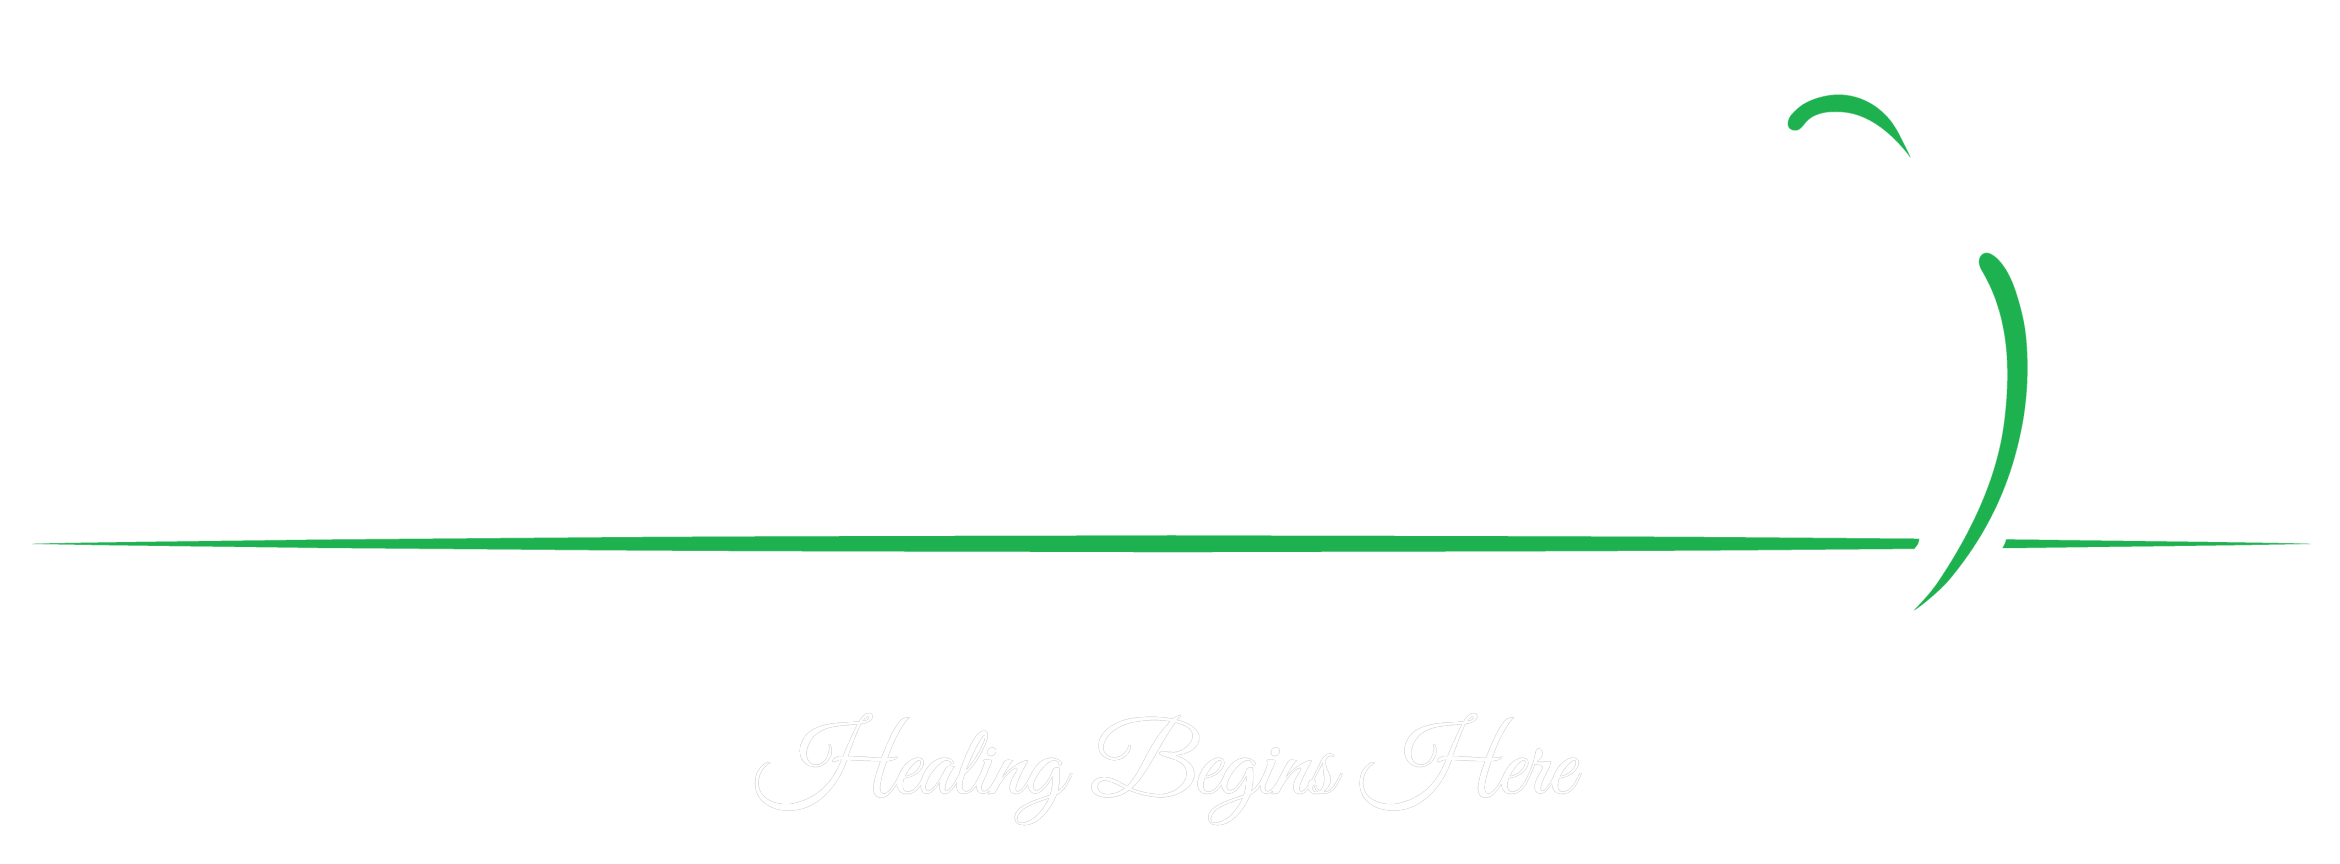 All Obituaries | Ott & Lee Funeral Home | Brandon MS funeral